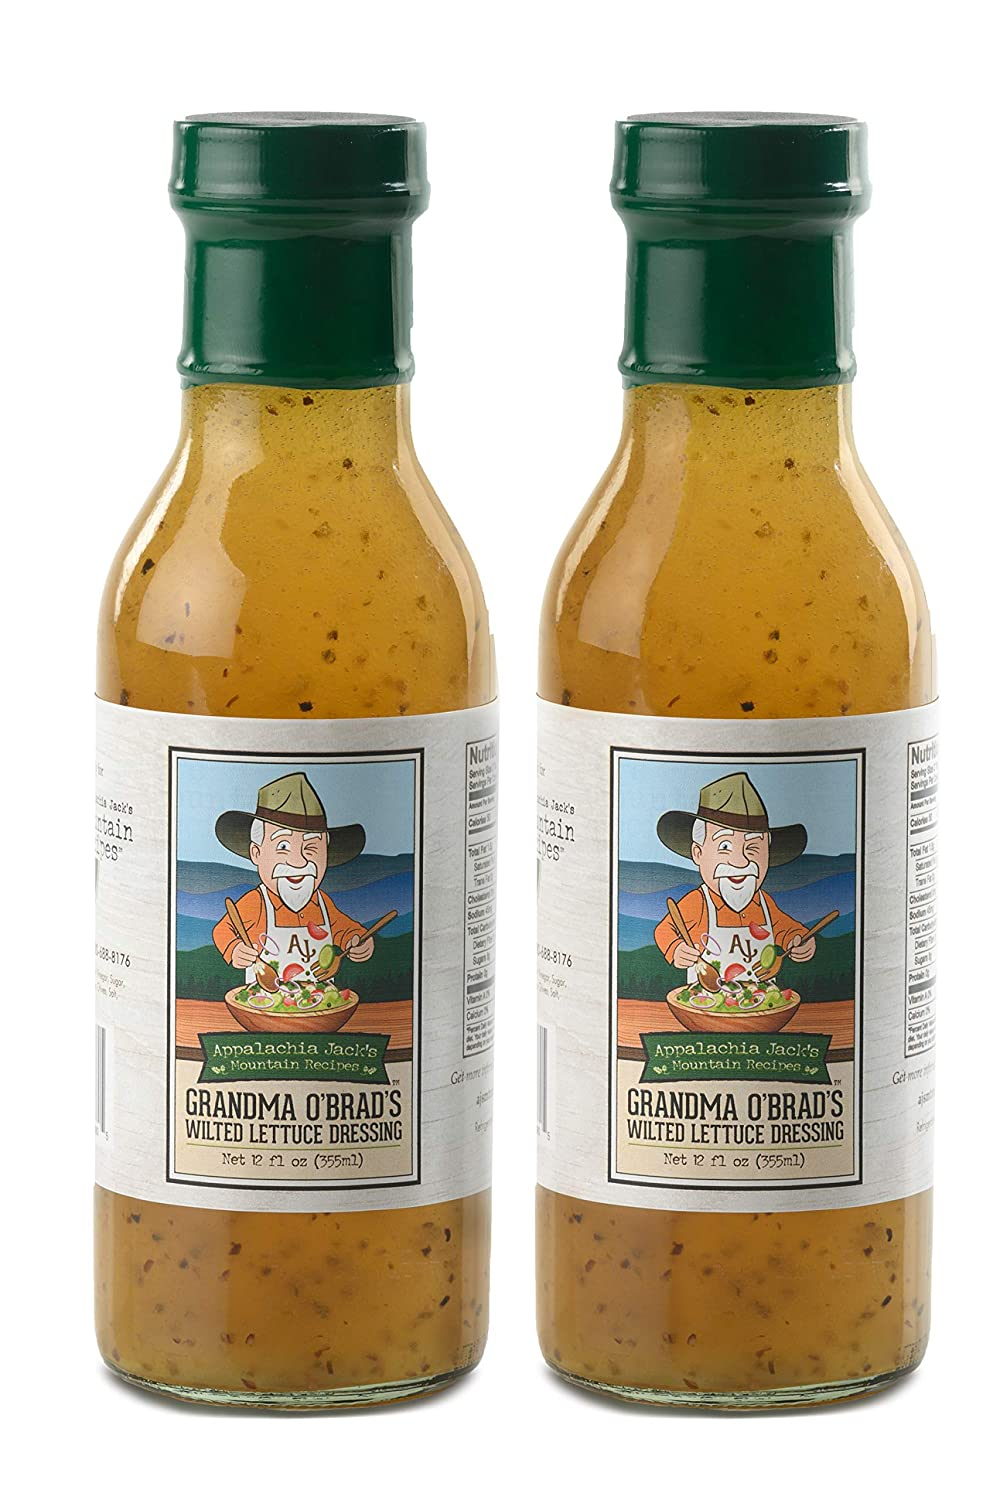 Appalachia Jack's Grandma O'Brad's Wilted Lettuce Salad Dressing - Sweet and Tangy Vinegar Based Dressing, Perfect for Salads and a True Taste of Appalachia - 12oz Bottles - 2 Pack